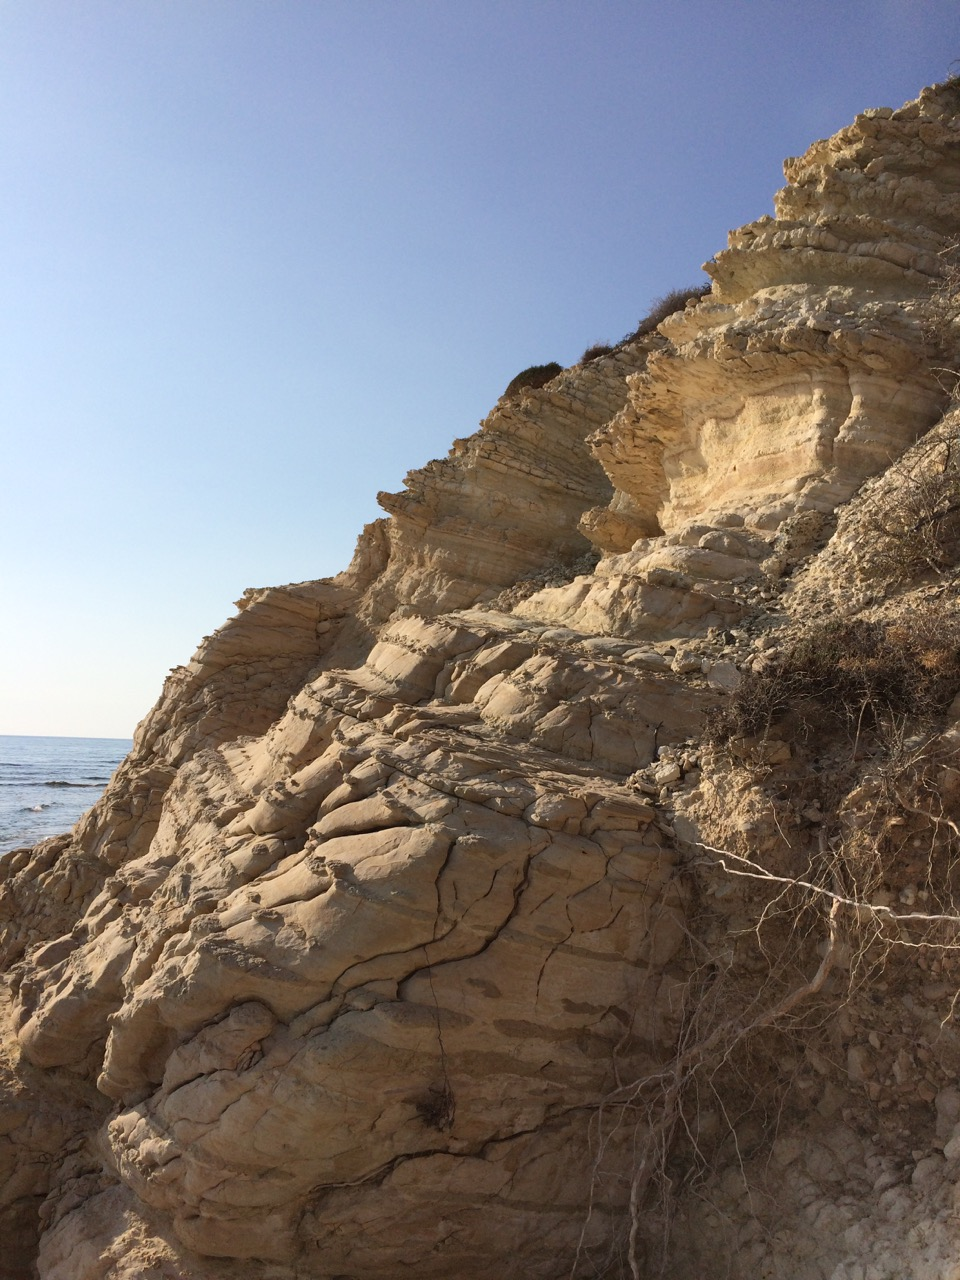 The cliffs remind the ones in Sicily